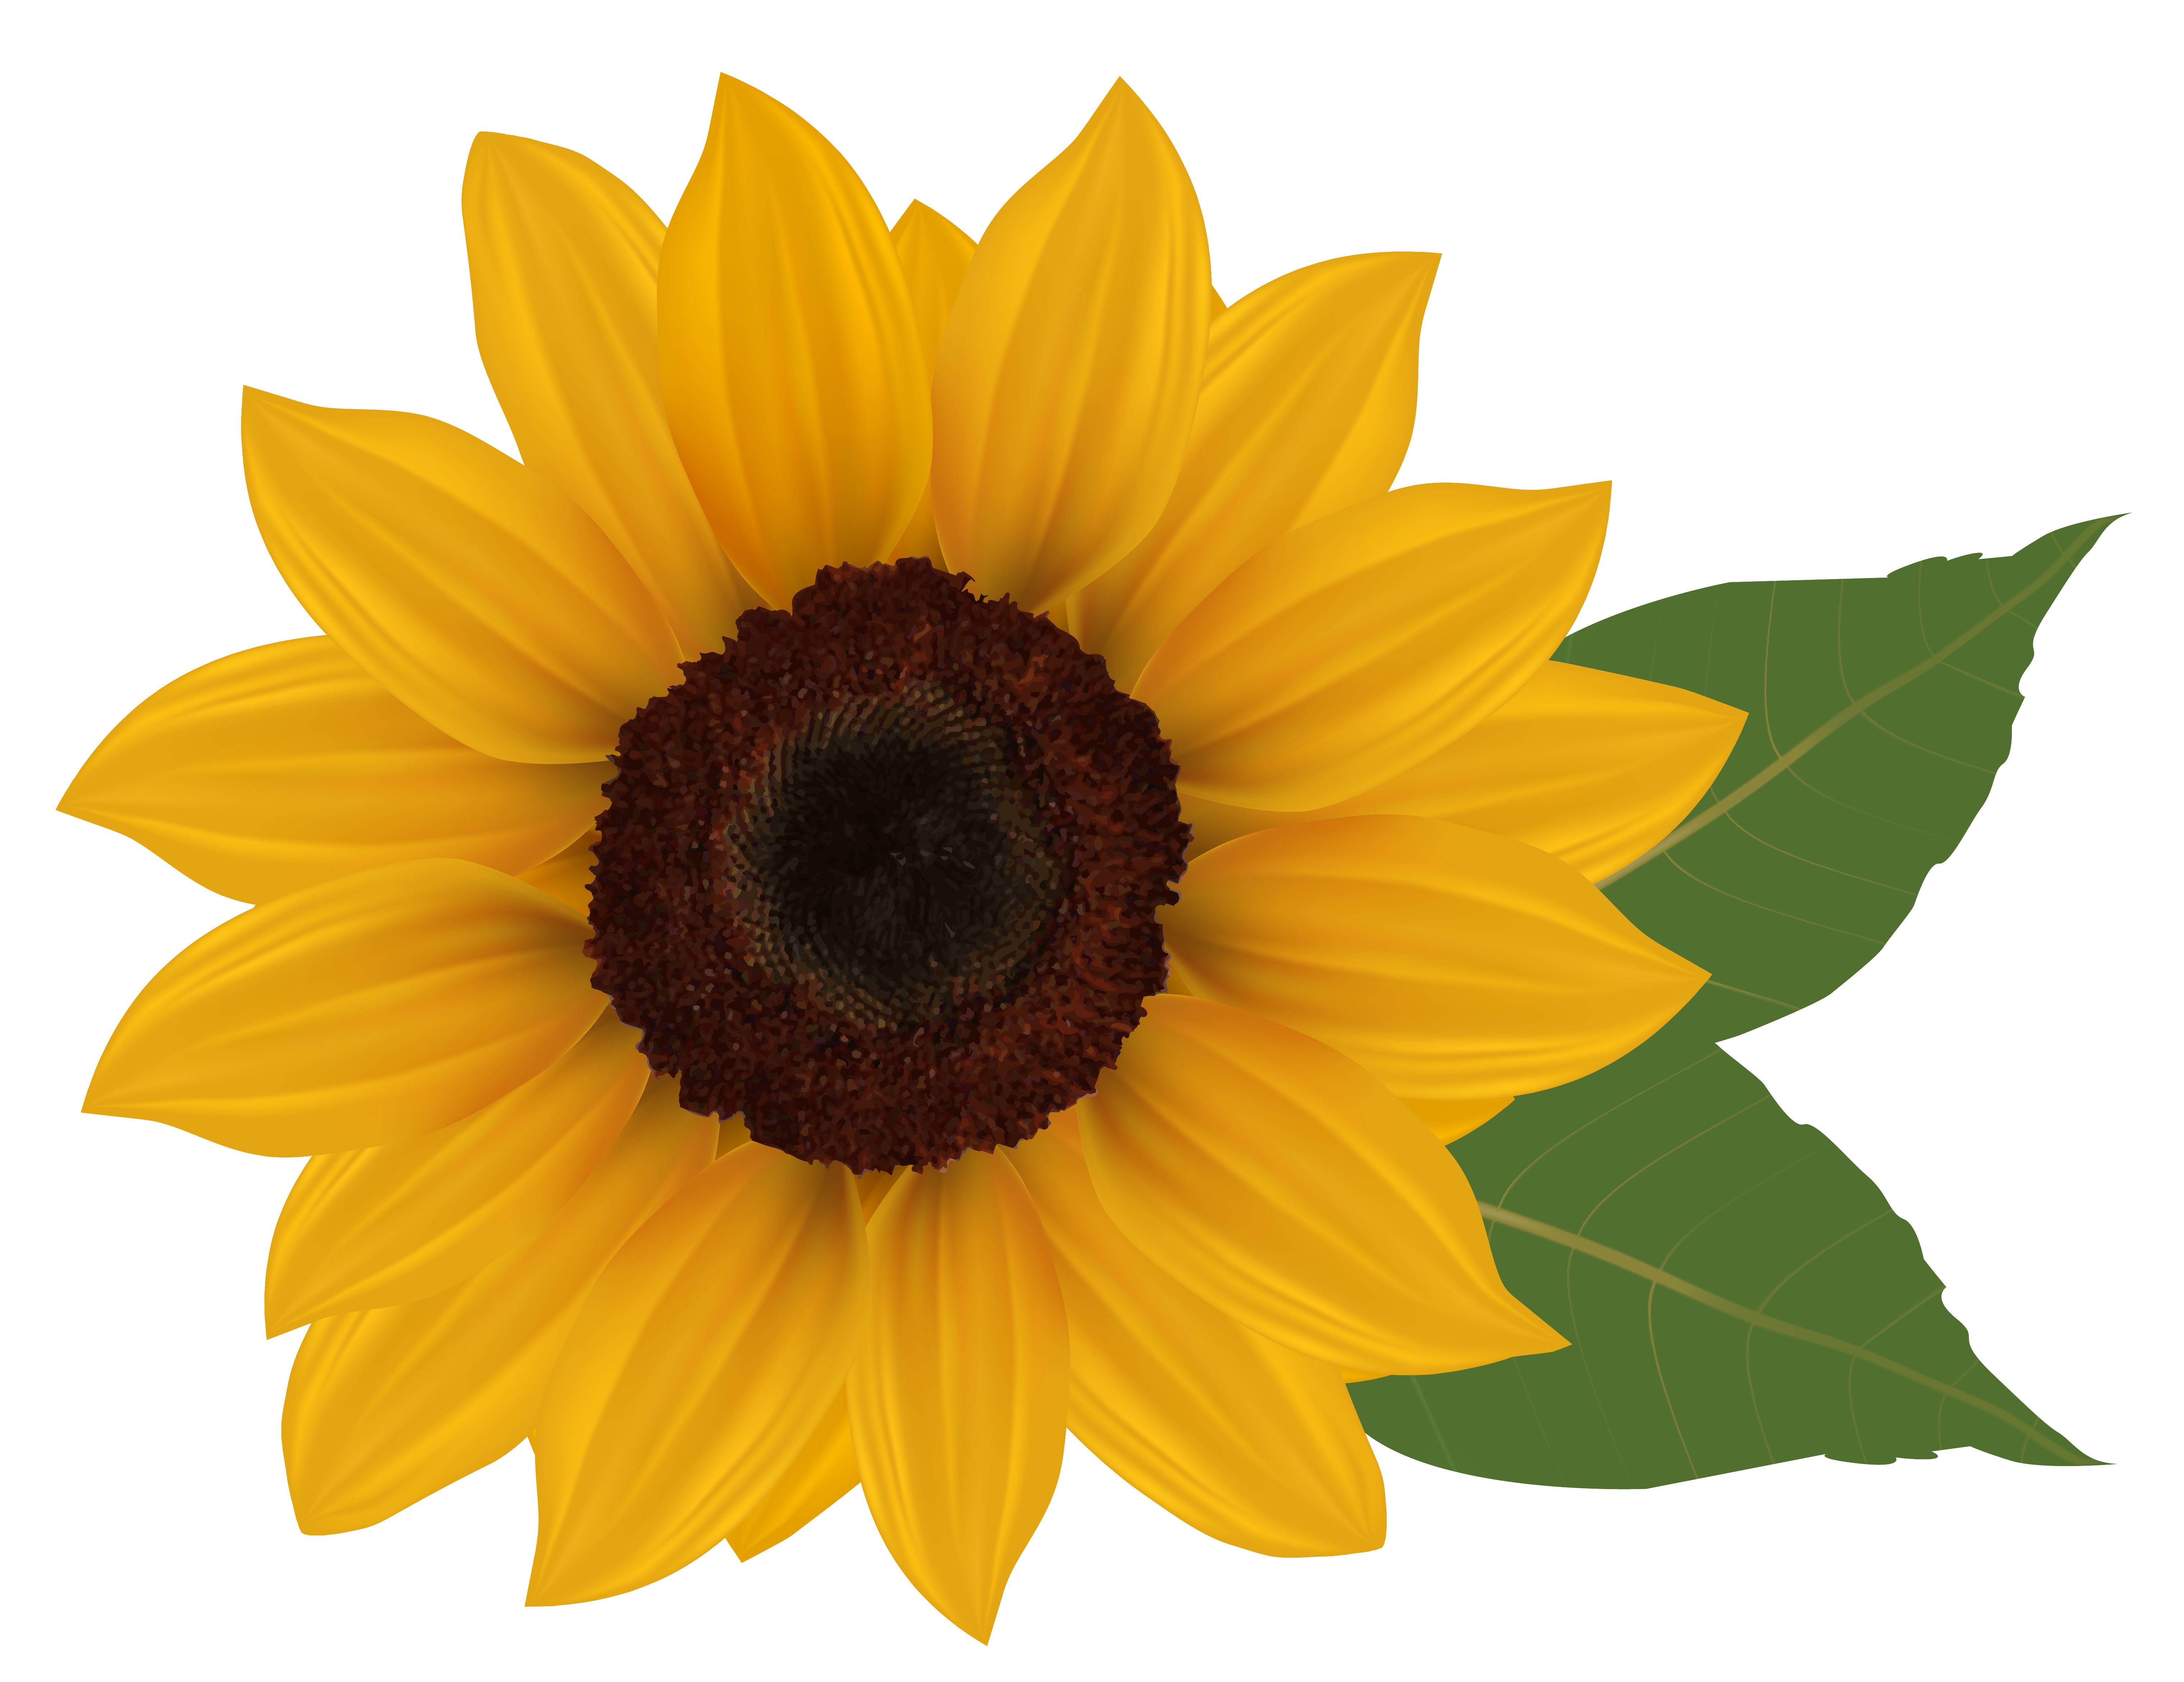 Free clipart images of sunflowers image black and white download Sunflower clip art free clipart images 2 clipartbold - ClipartBarn image black and white download